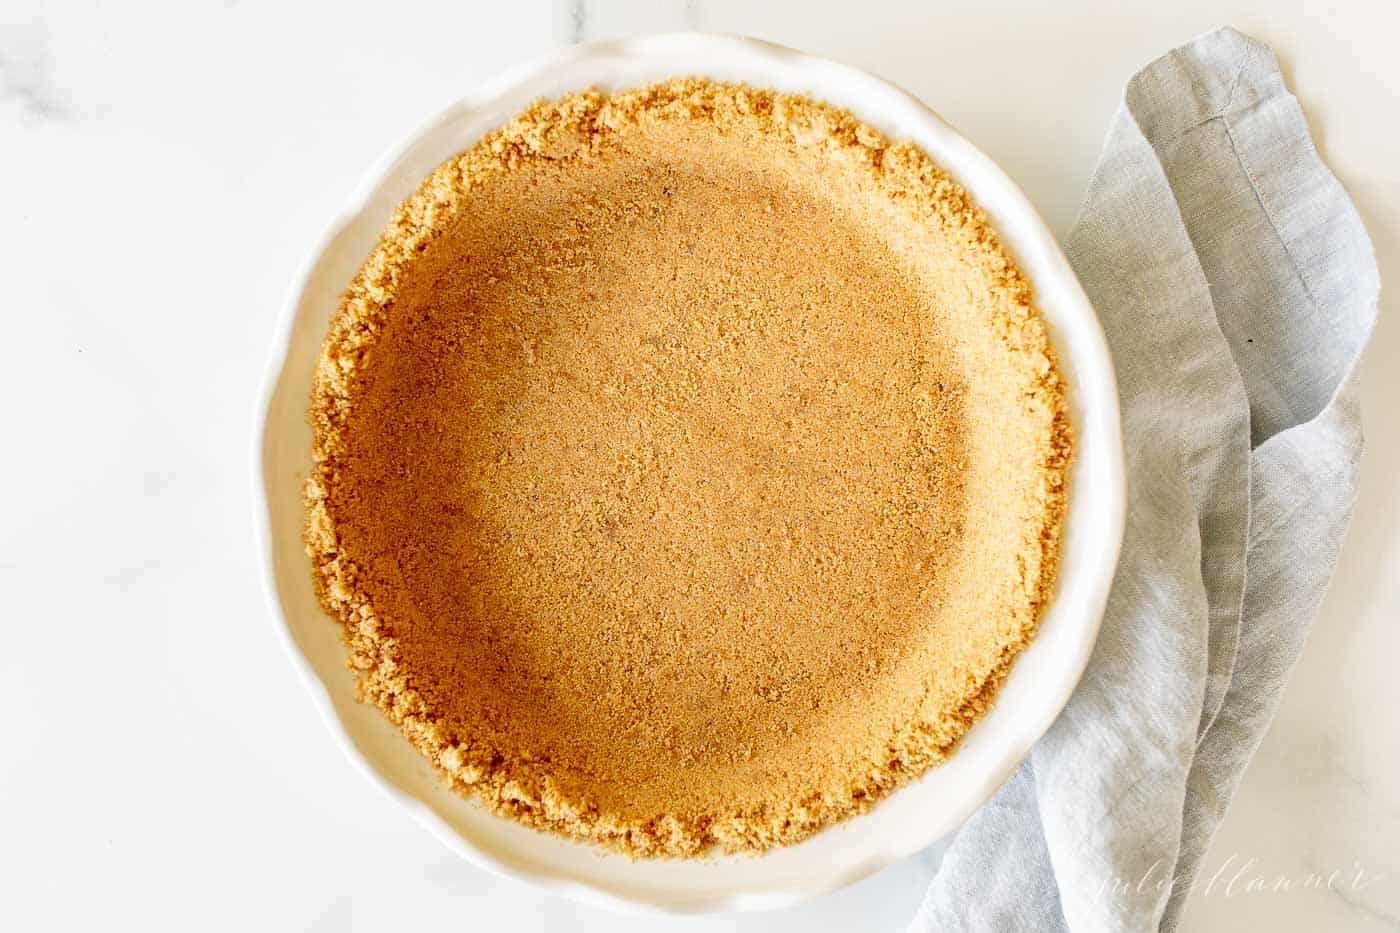 graham cracker pie crust in white dish with blue napkin